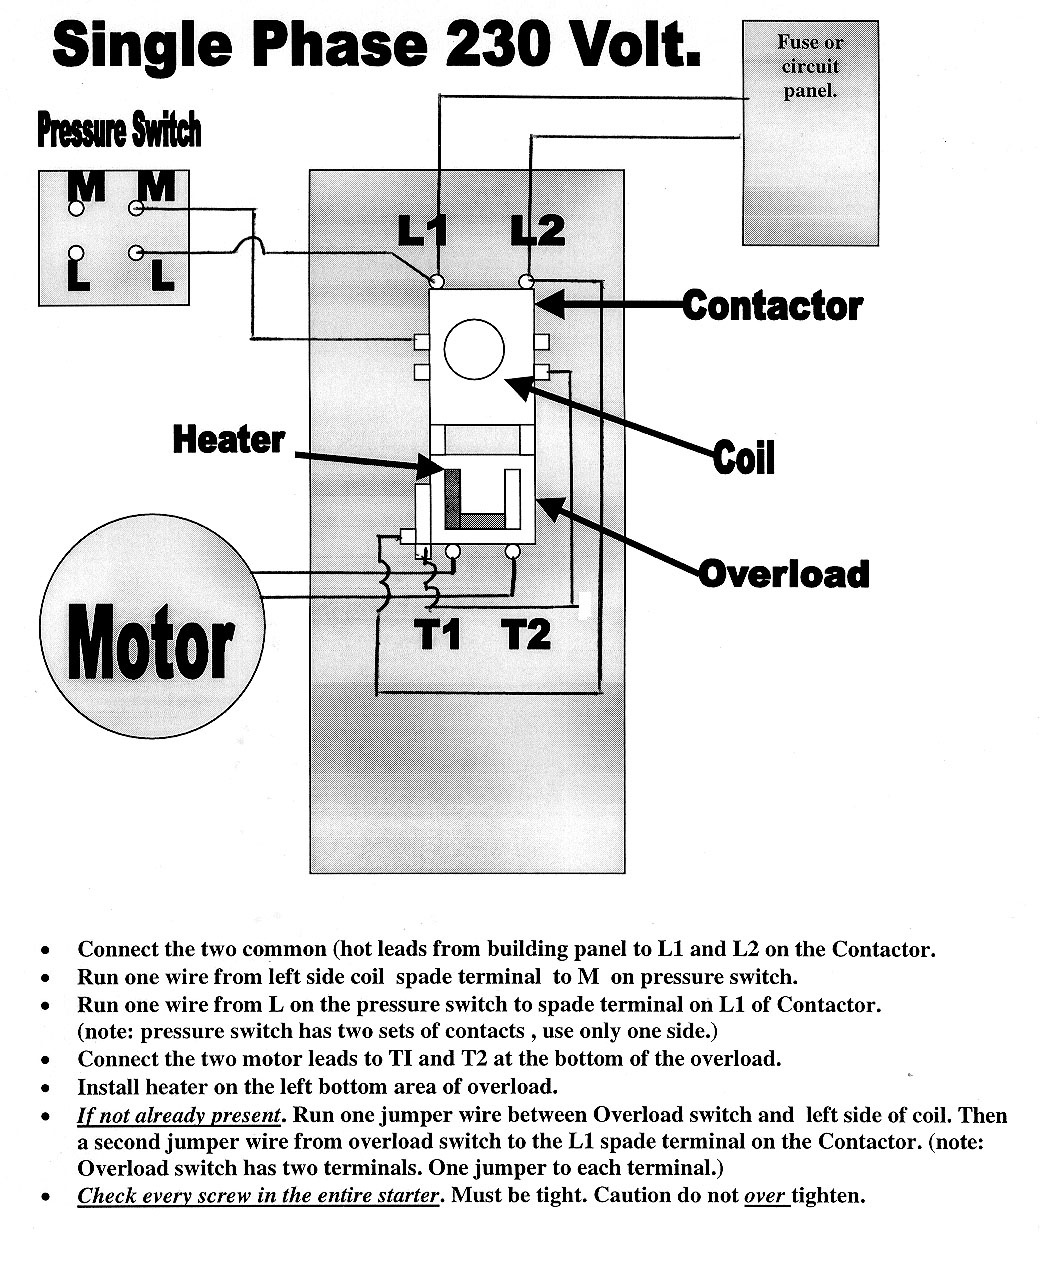 A Single Phase 240 Volt Breaker Wiring Diagram Manual Guide